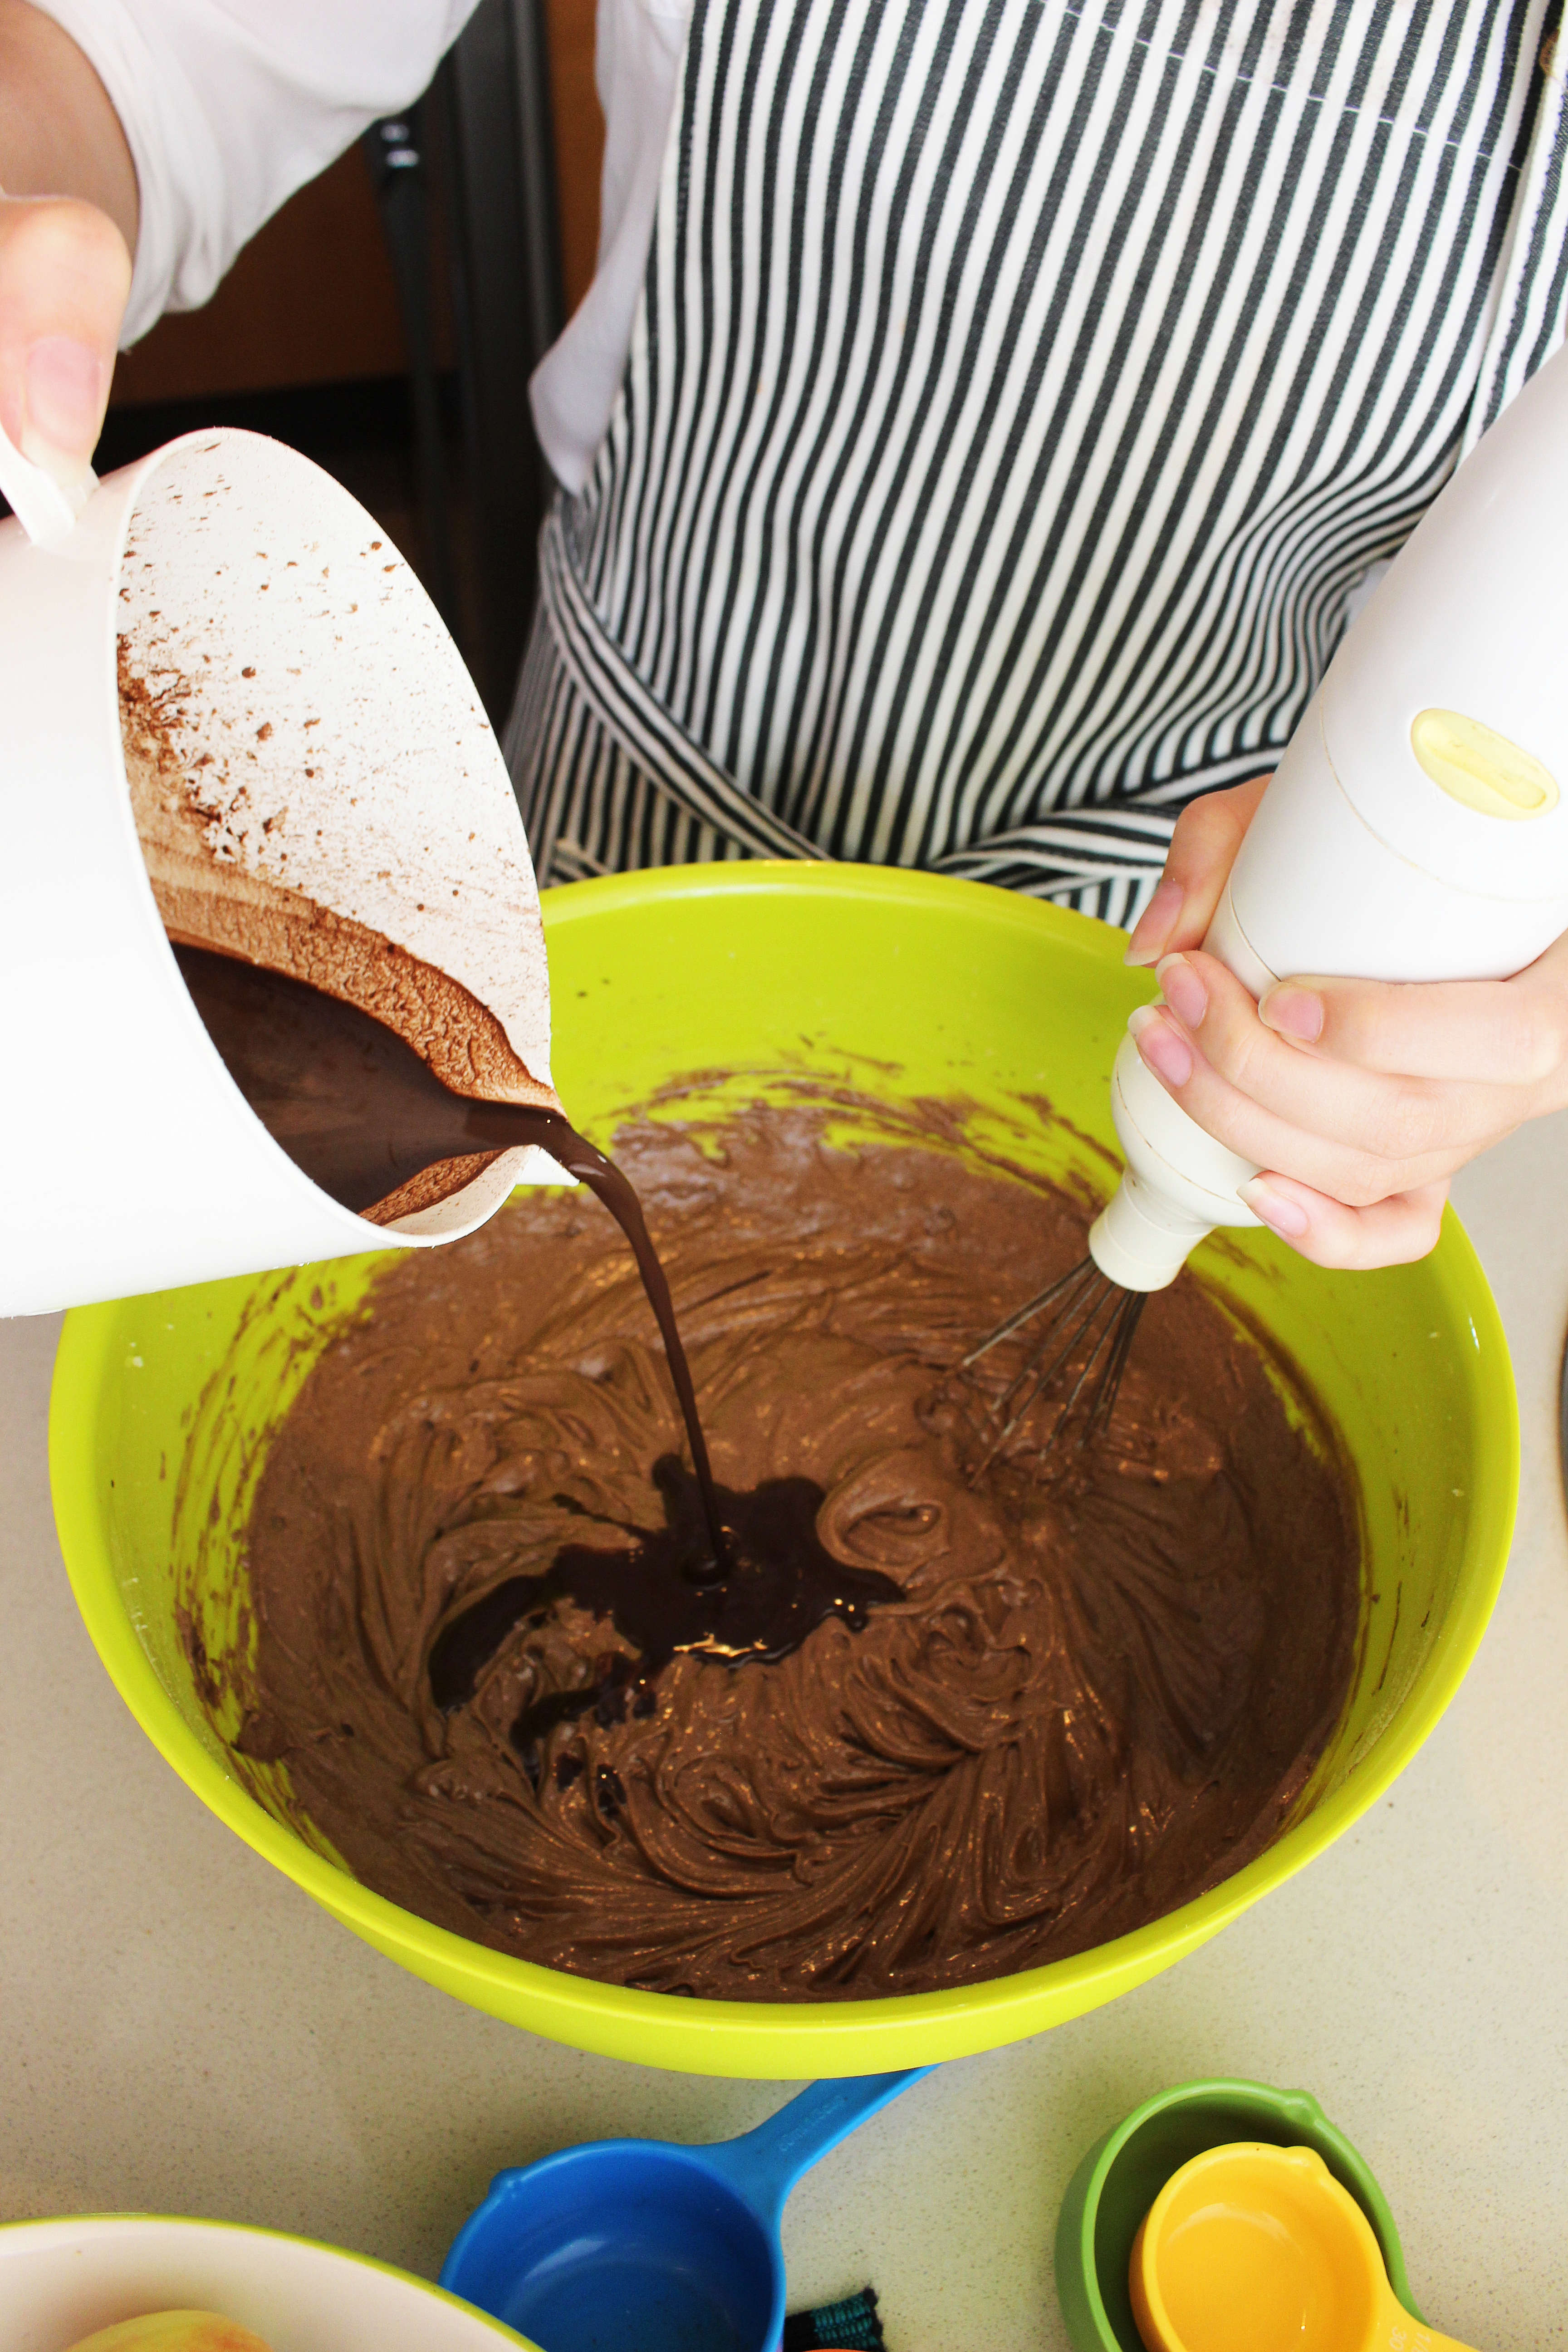 Picture of Preparing the Batter